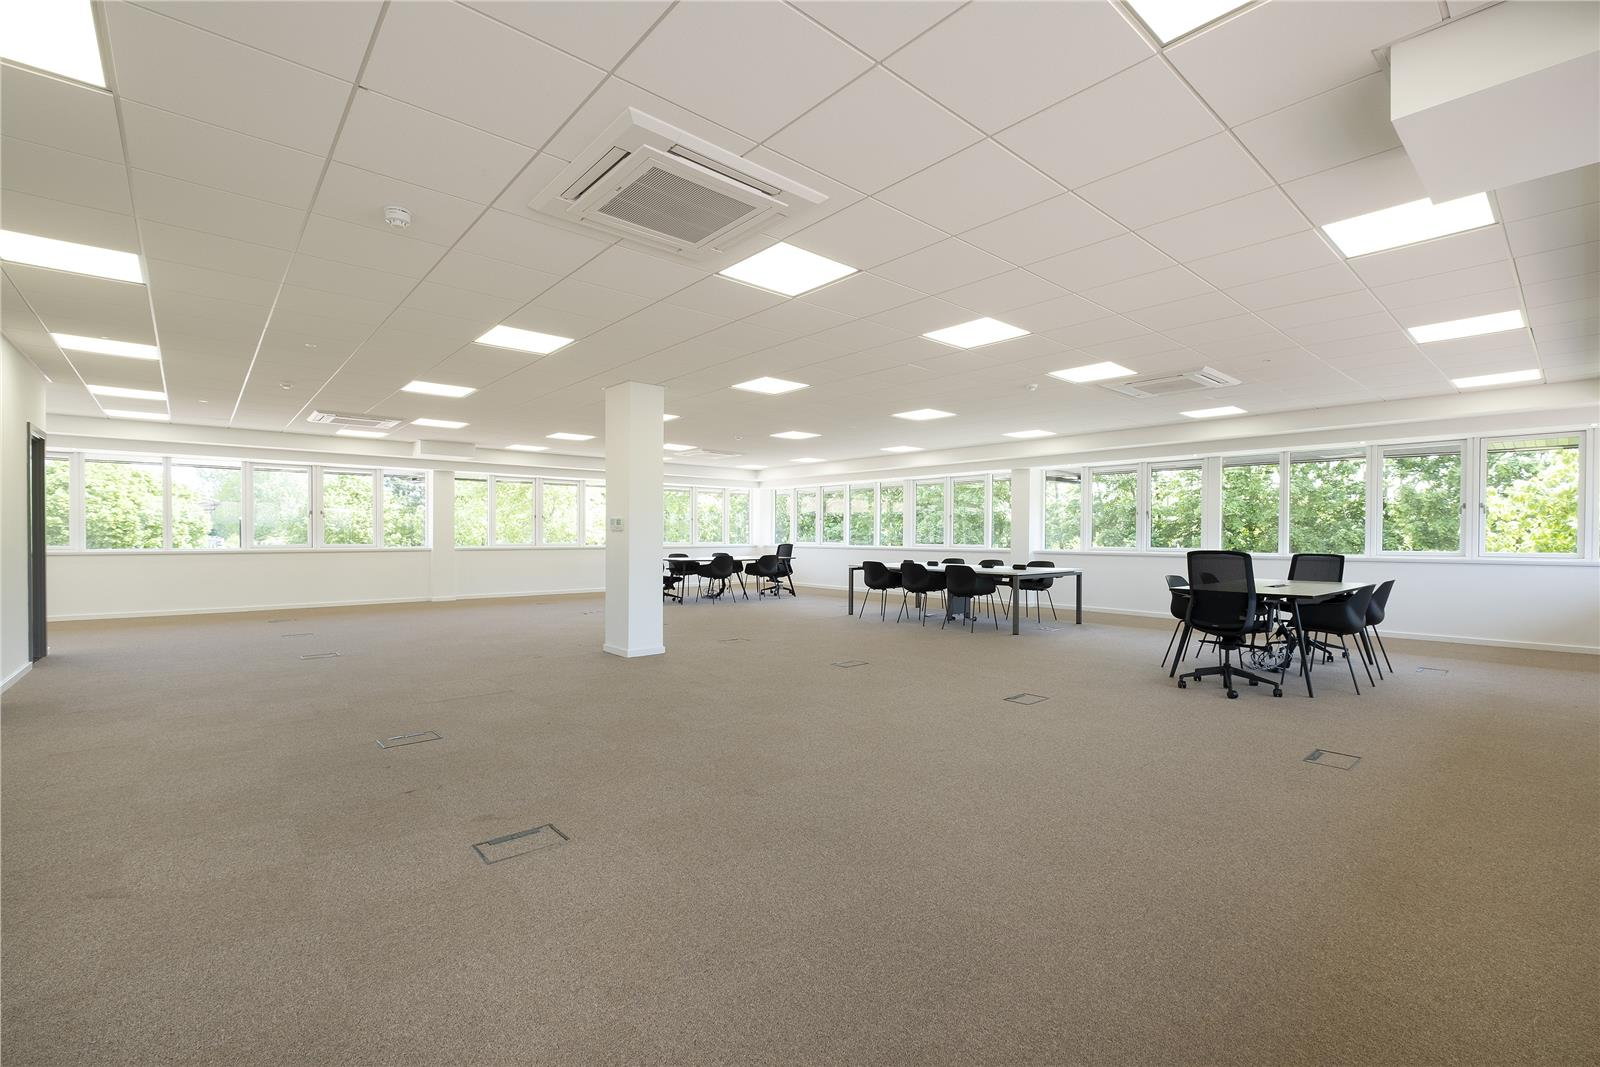 Suite 3.7, Building 3, Caldecotte Lake Business Park, Milton Keynes, MK7